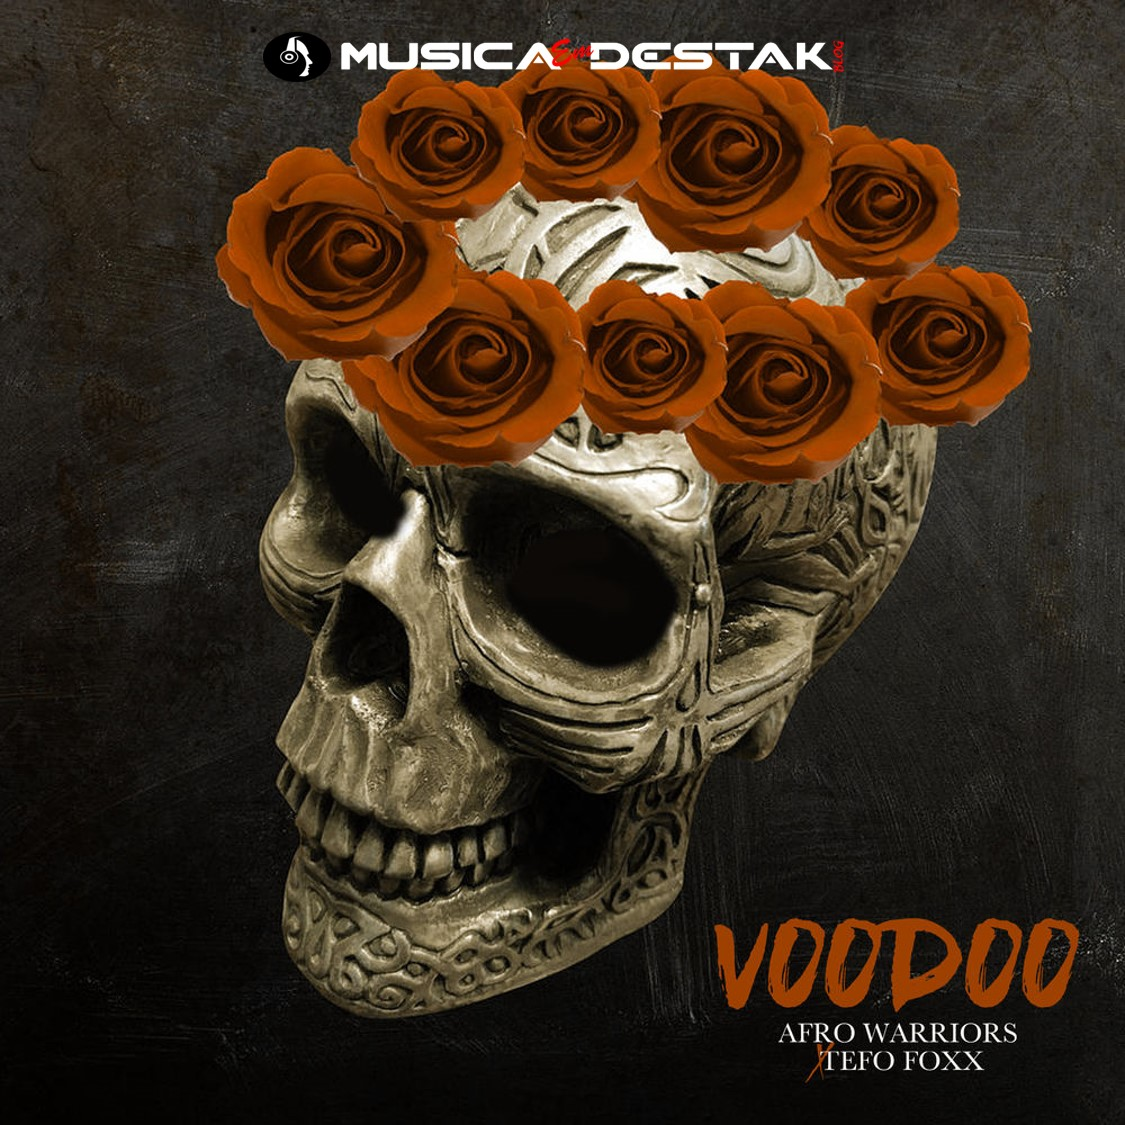 Afro Warriors feat. Tefo Foxx – Voodoo (Download mp3) [2019]